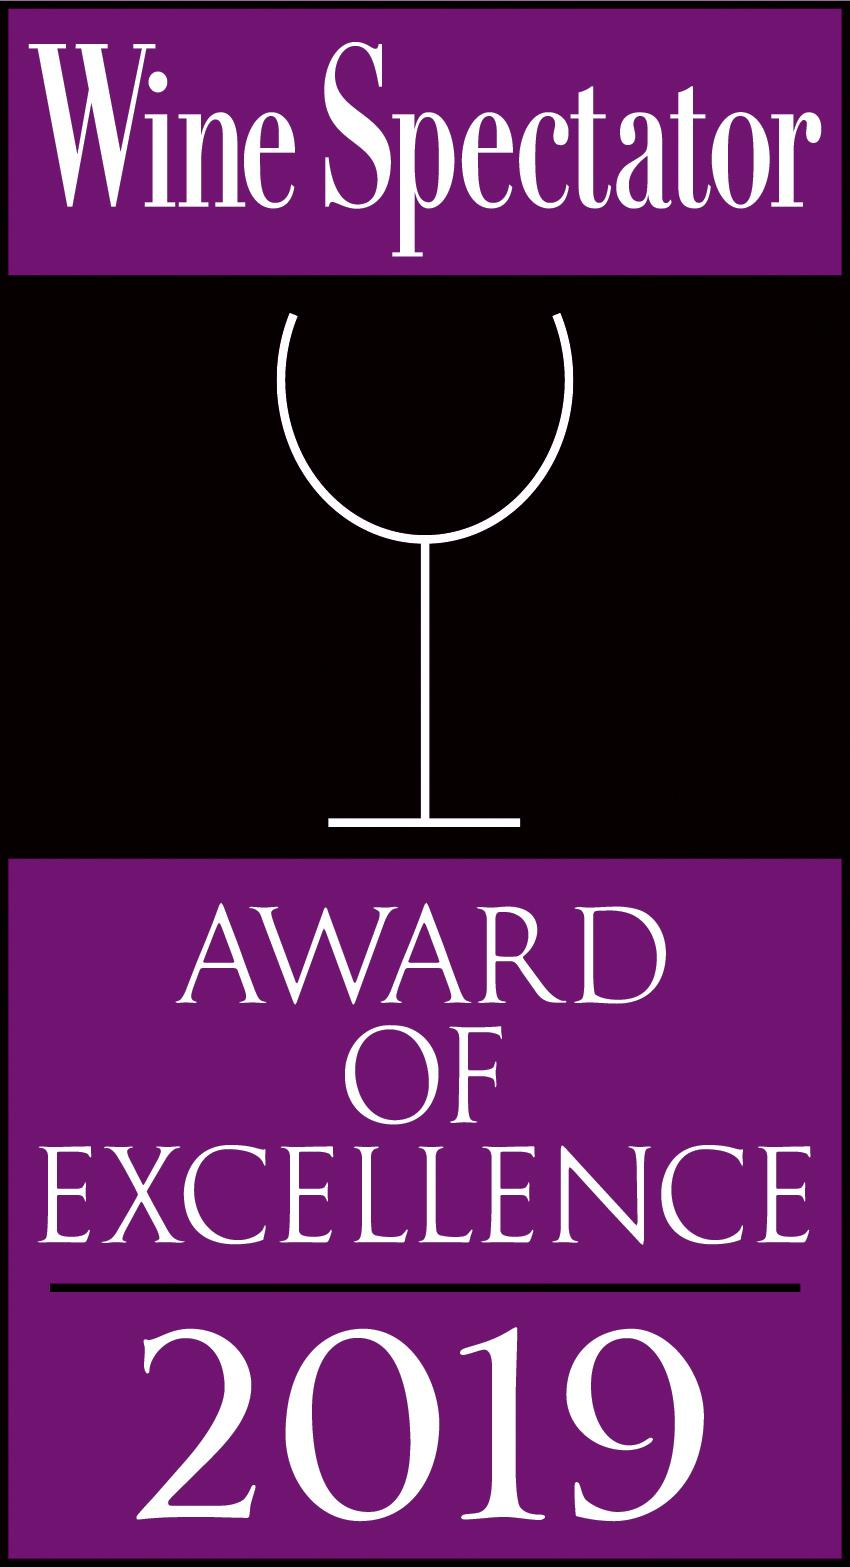 Wine Spectator Award of Excellence: 2019